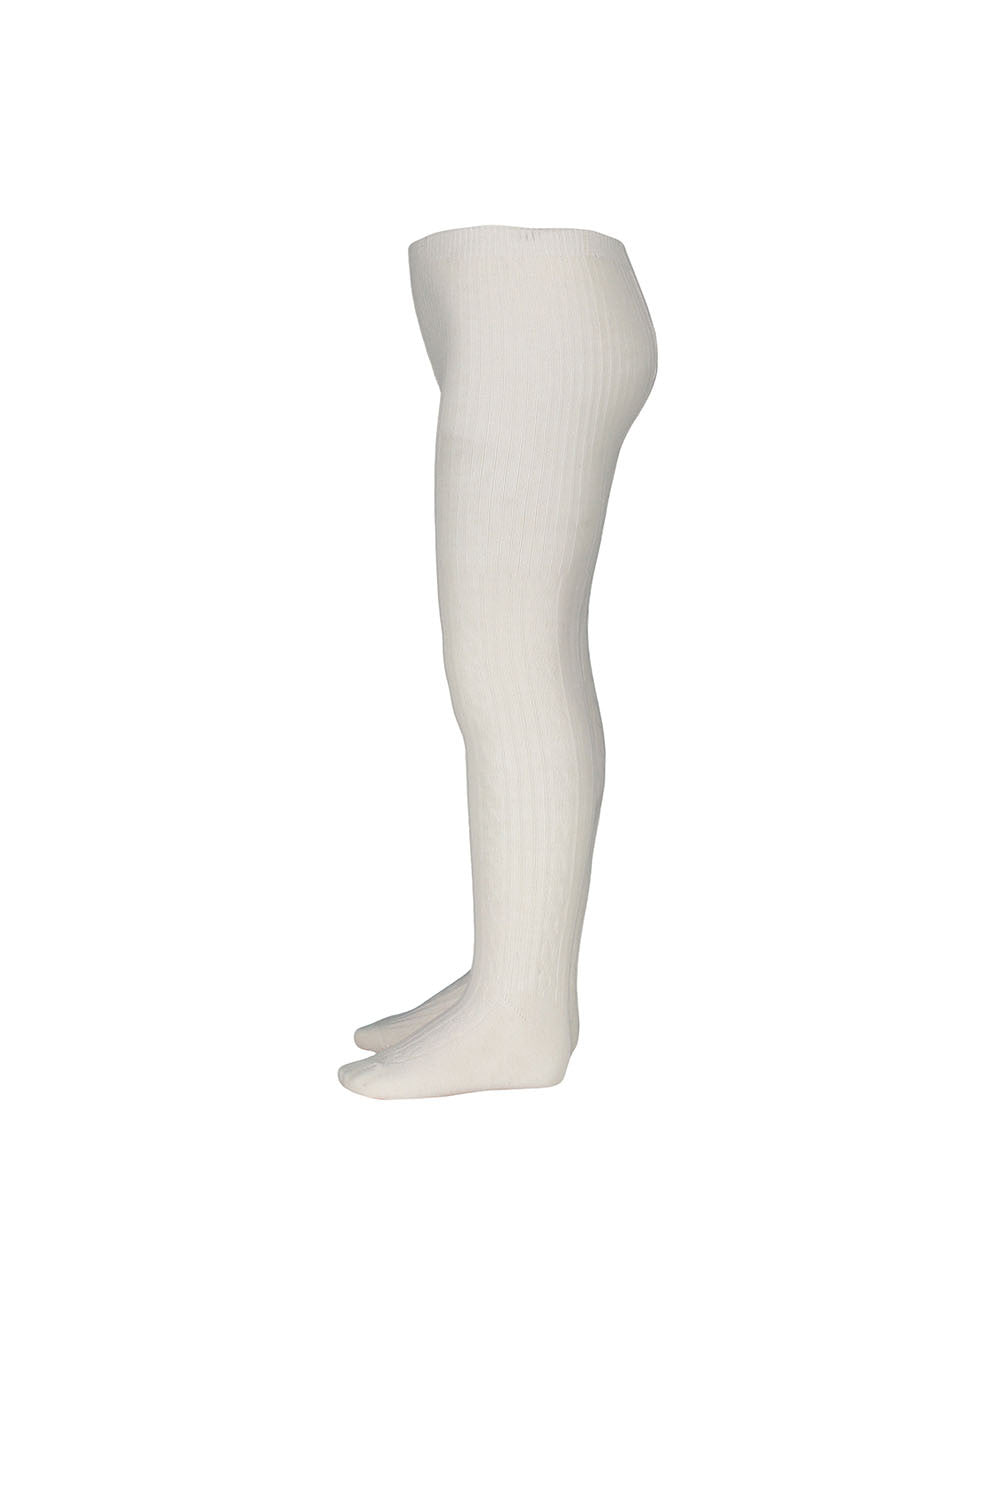 Jacquard Tights - Off White